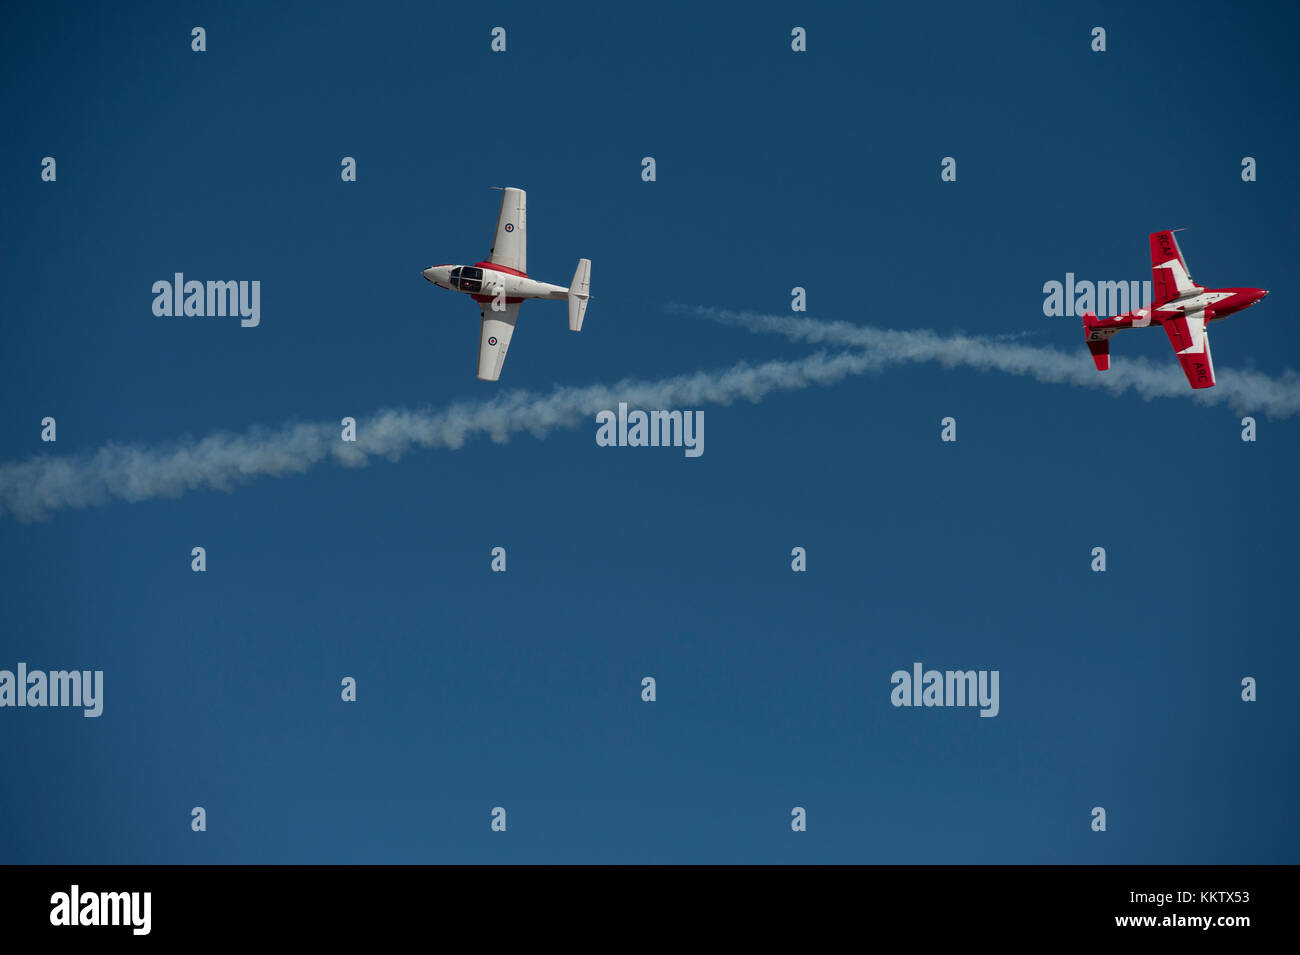 Royal Canadian Snowbirds performing an 'Inverted Opposing Knife Edge Pass at the 'Gowen Thunder 2017 Airshow' - Stock Image